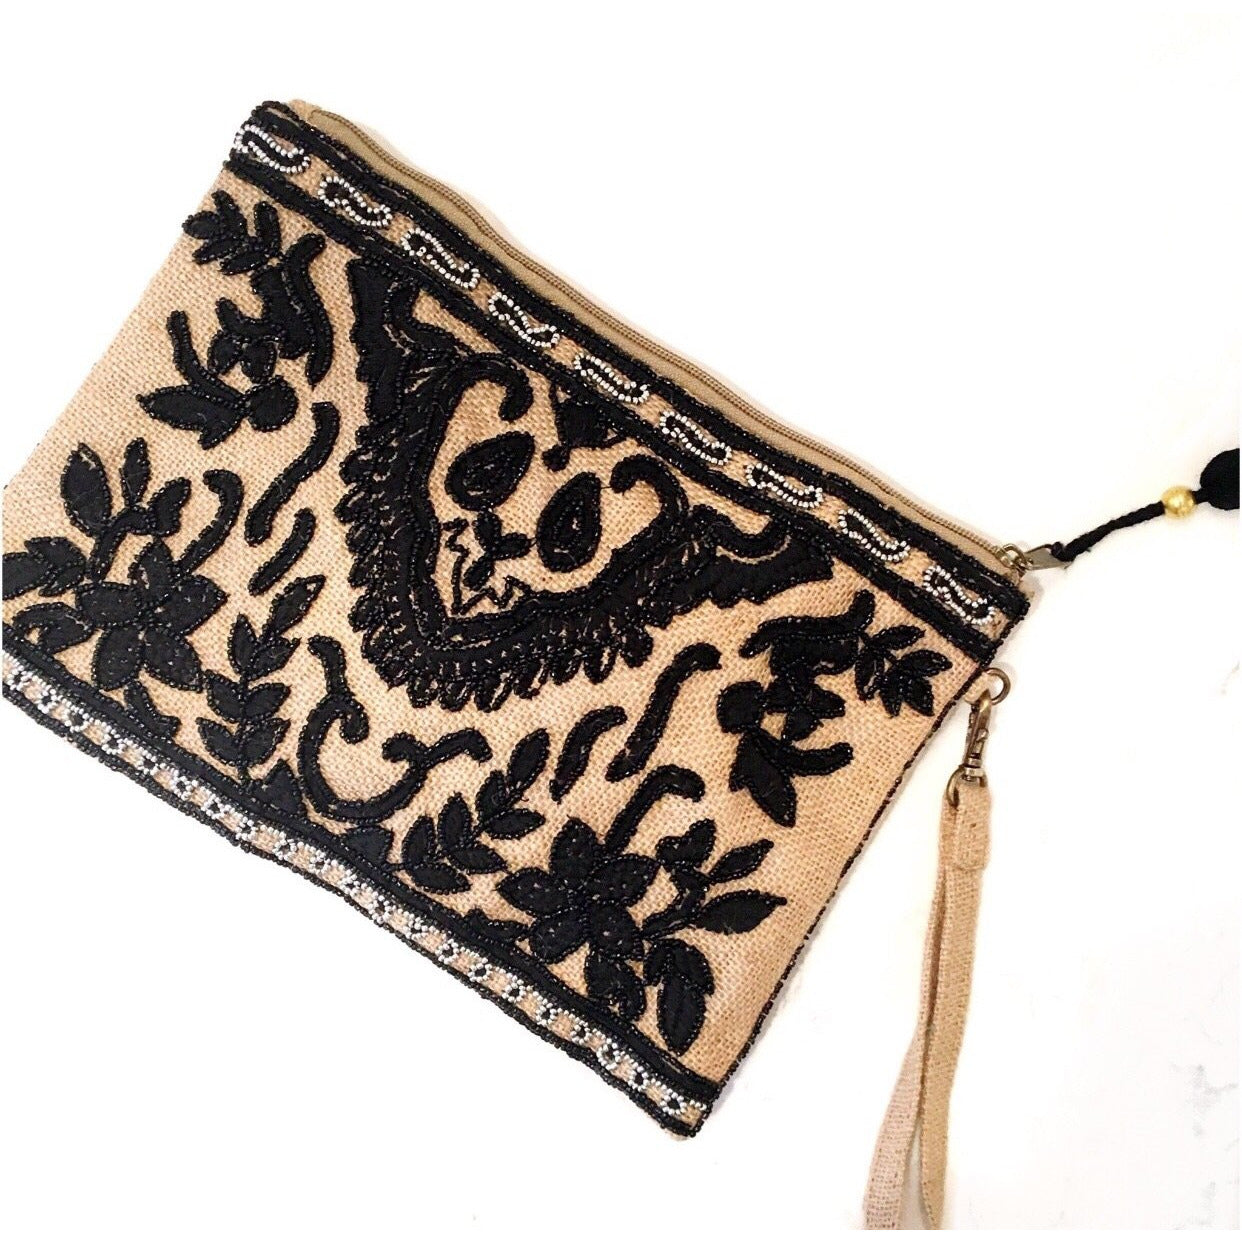 Sale ! Delaney Jute Clutch, Black/Tan - Glamco Boutique